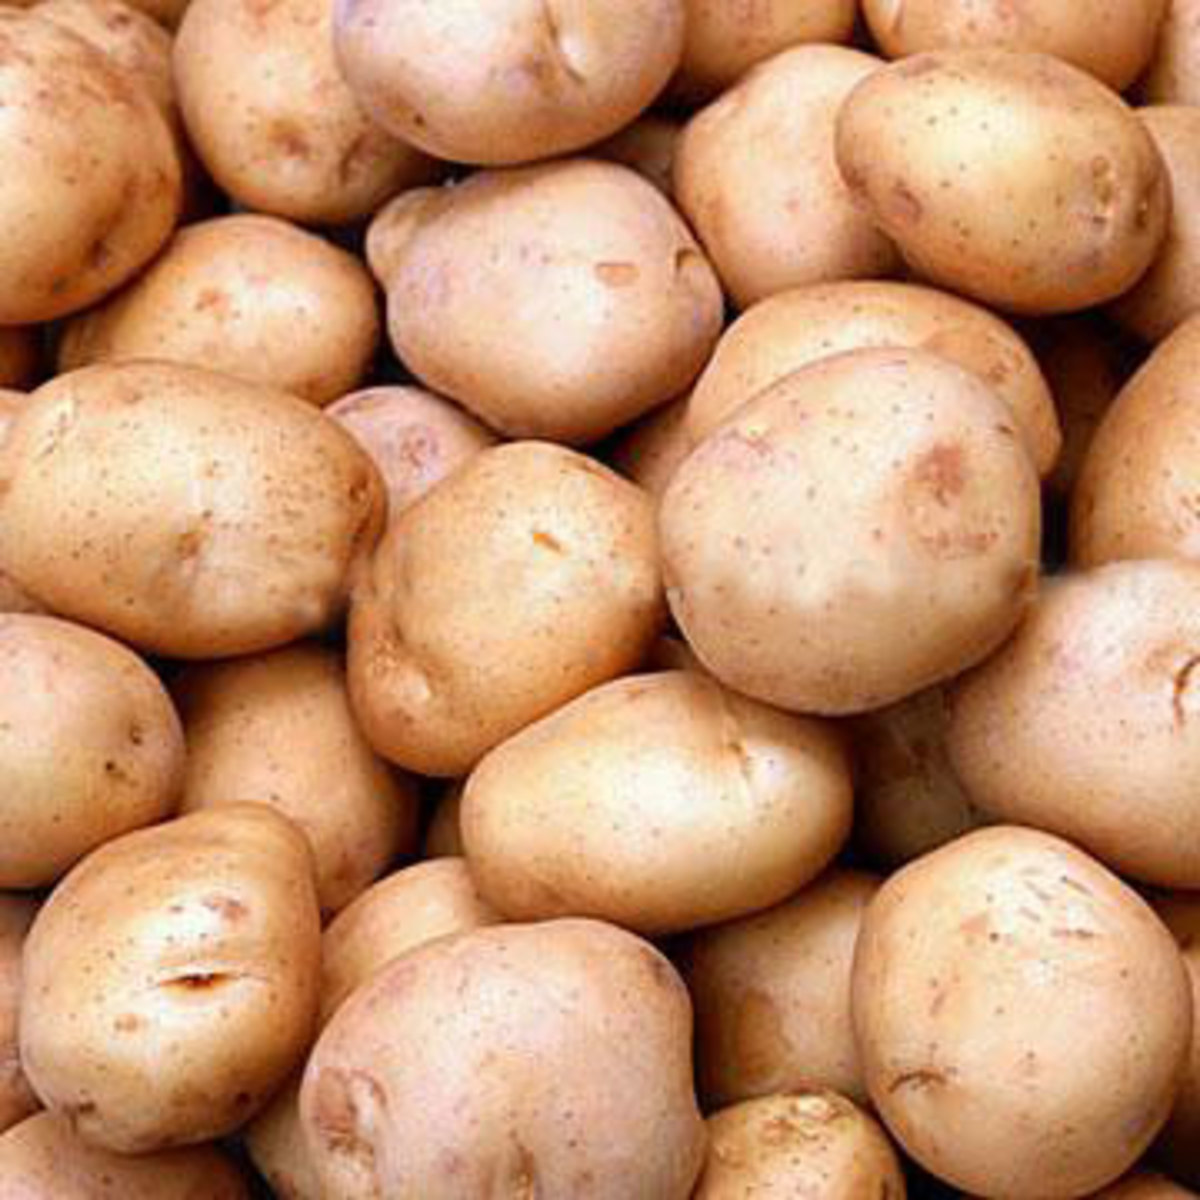 Potatoes help relieve puffiness.